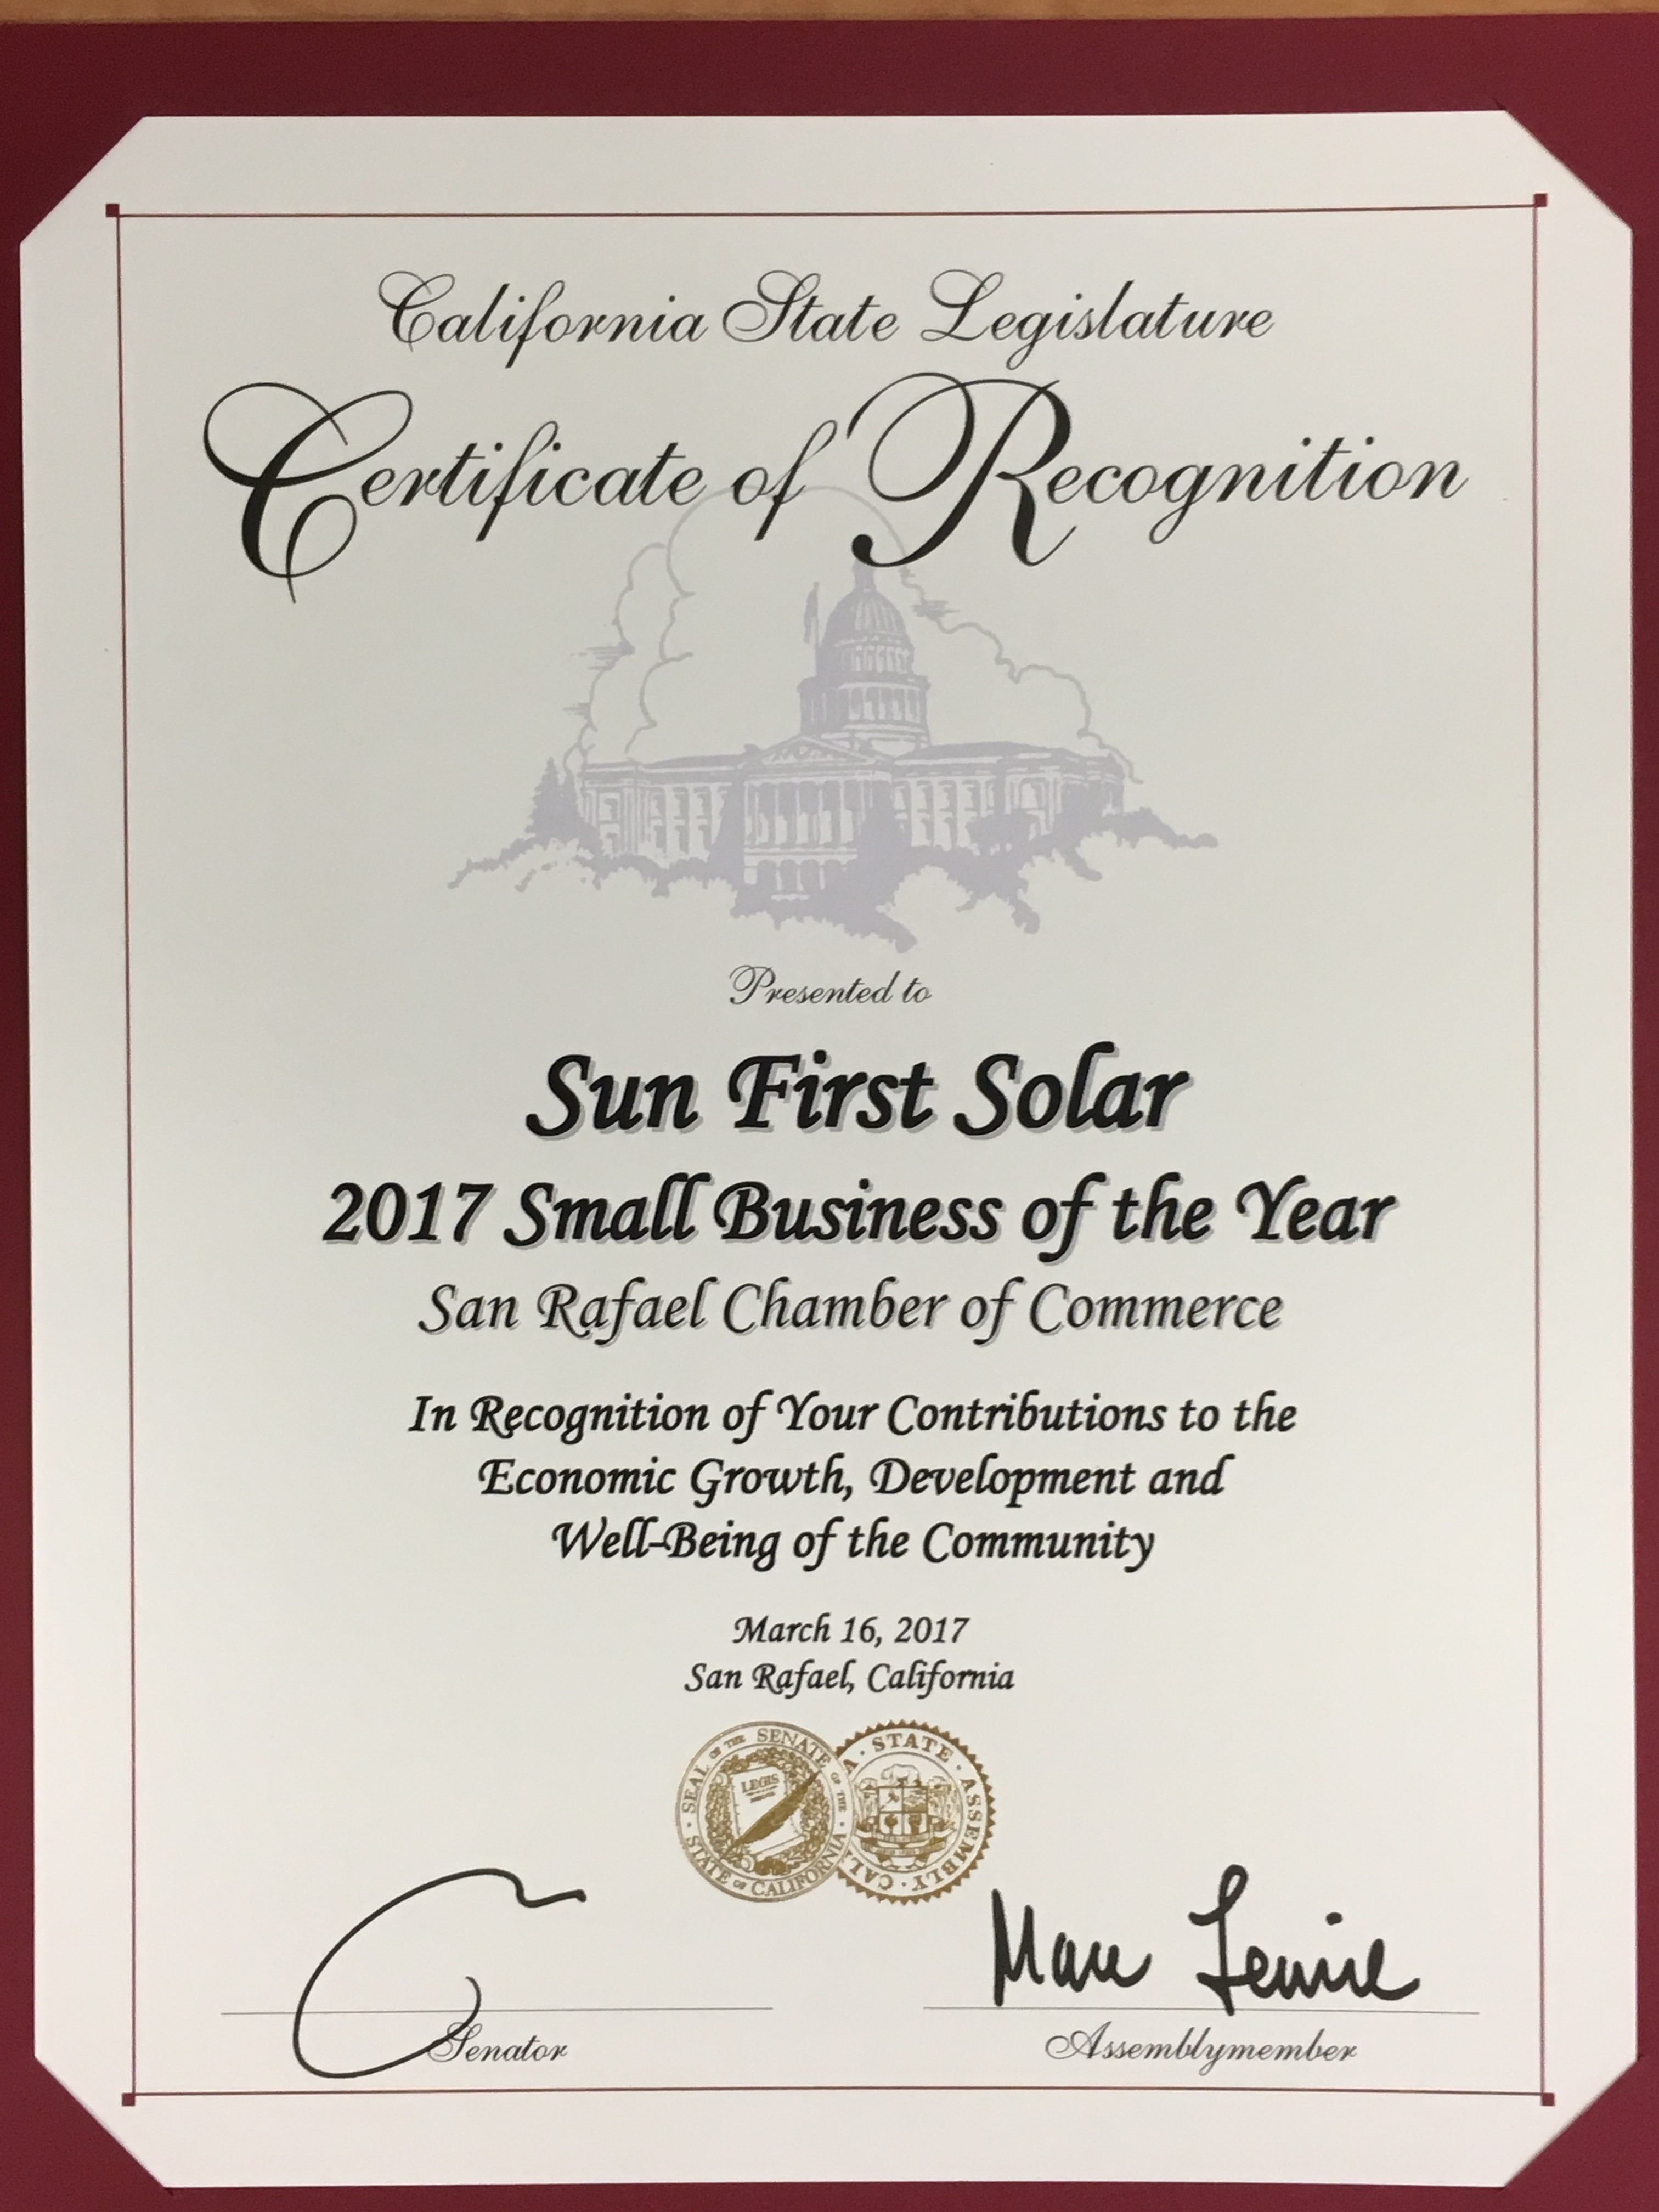 Sun First Solar Shines As Small Business Of The Year Award